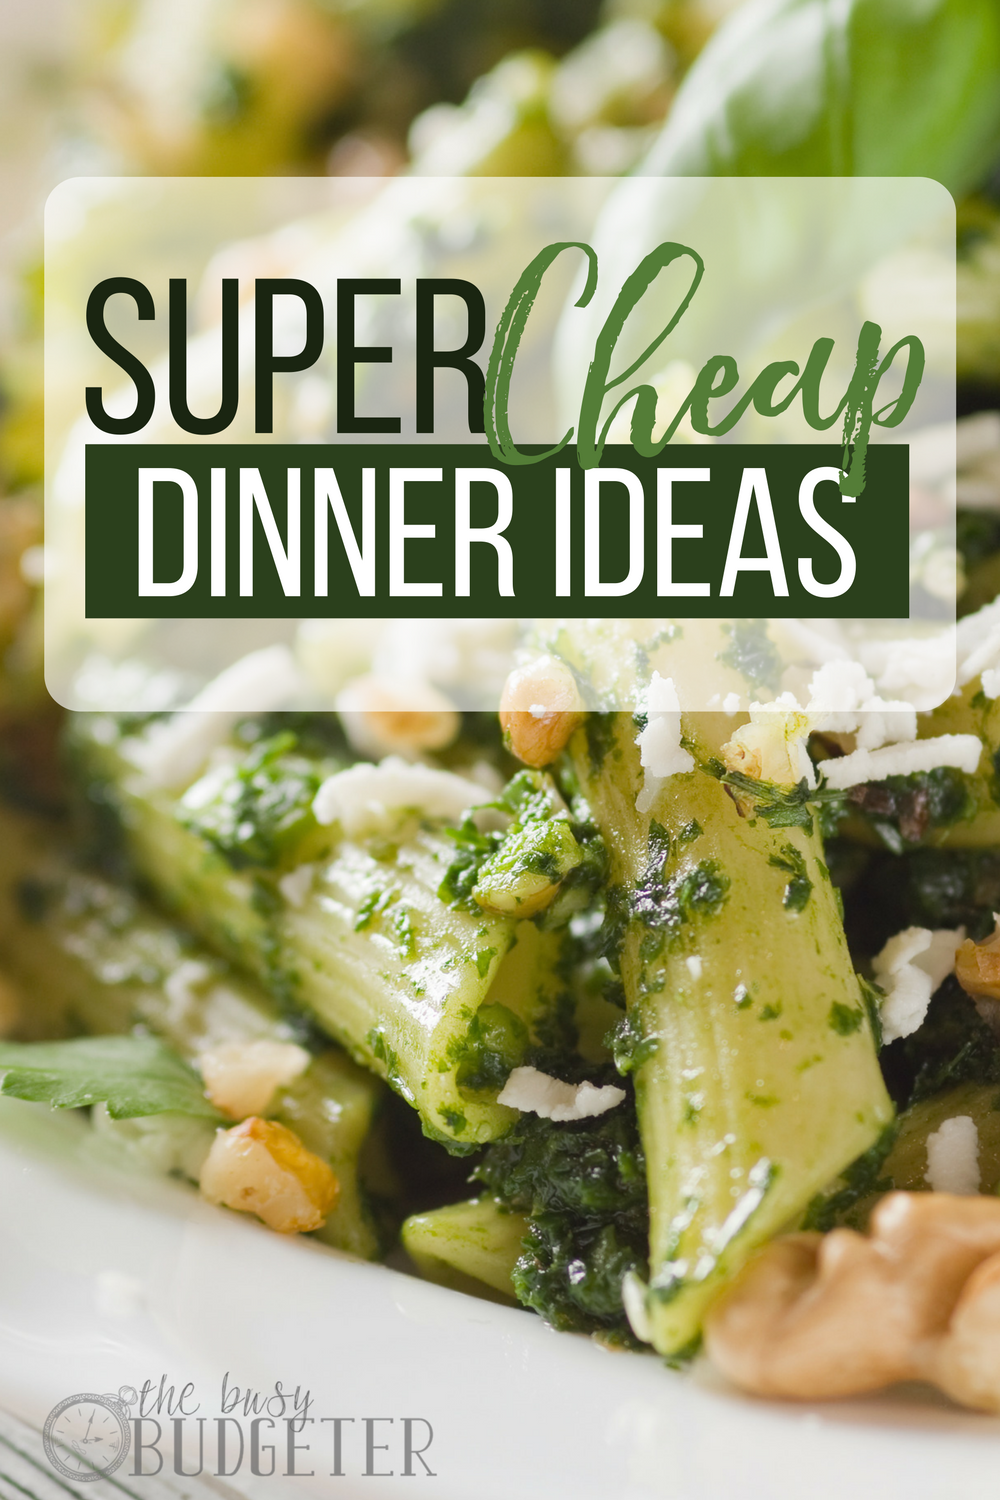 Great list! Our grocery budget is tight and I needed cheap dinner ideas to fill up my menu plan for the month. There were tons of good ones in here!